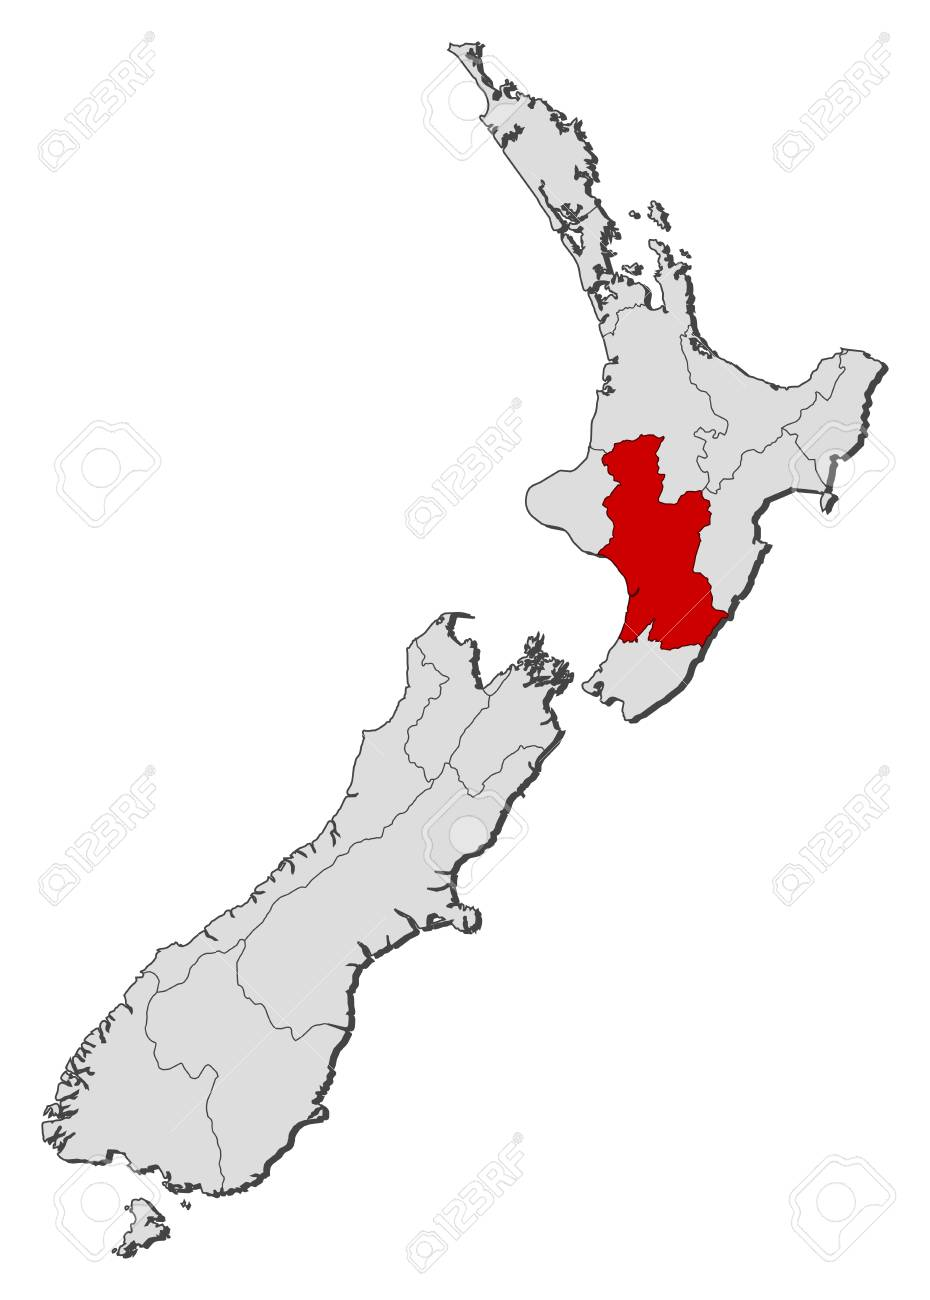 Map New Zealand Regions.Political Map Of New Zealand With The Several Regions Where Hawke S